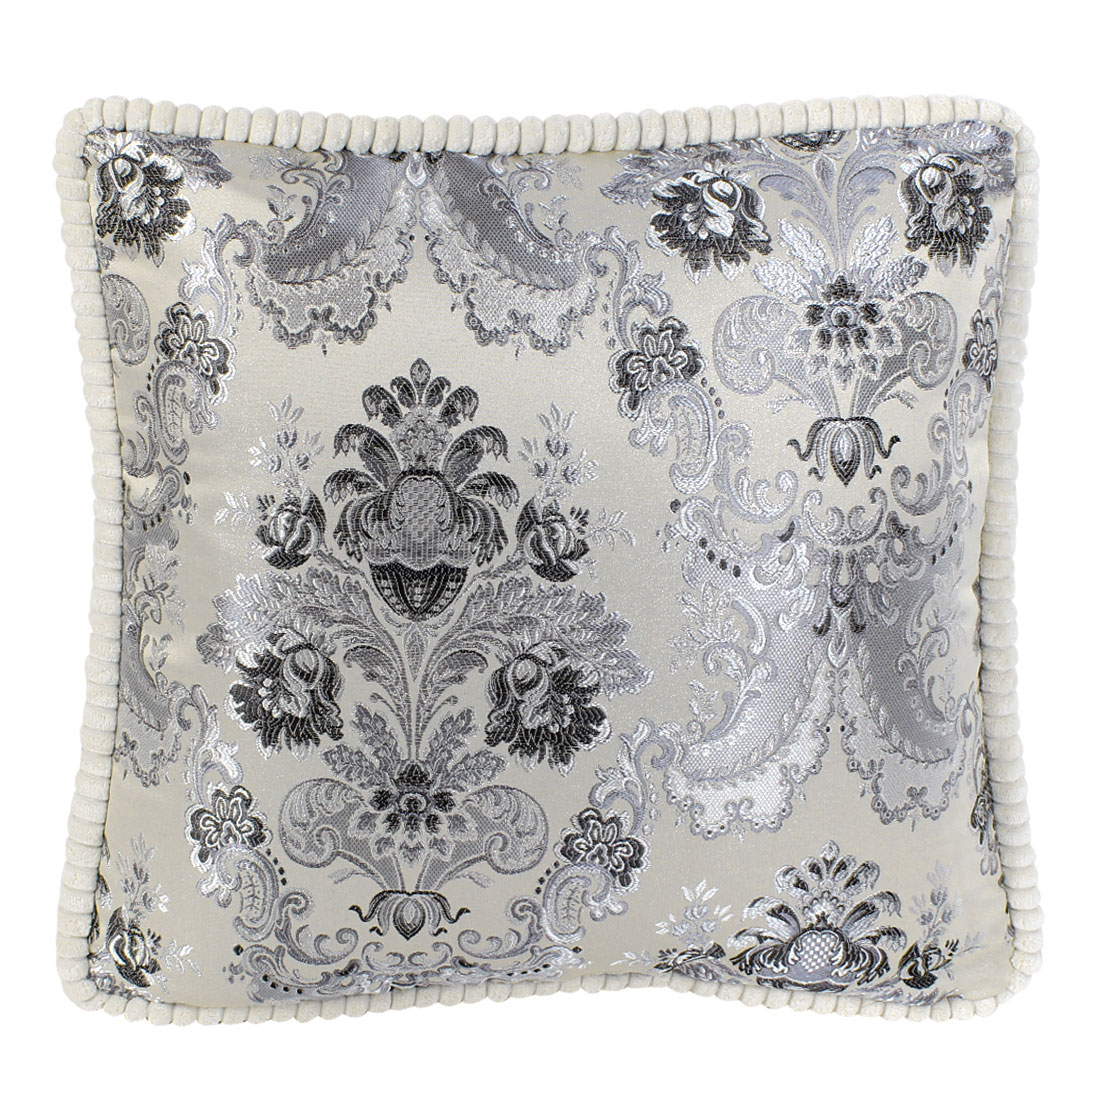 Chenille Floral Embroidery Throw Cushion Pillow 45cm x 45cm Beige